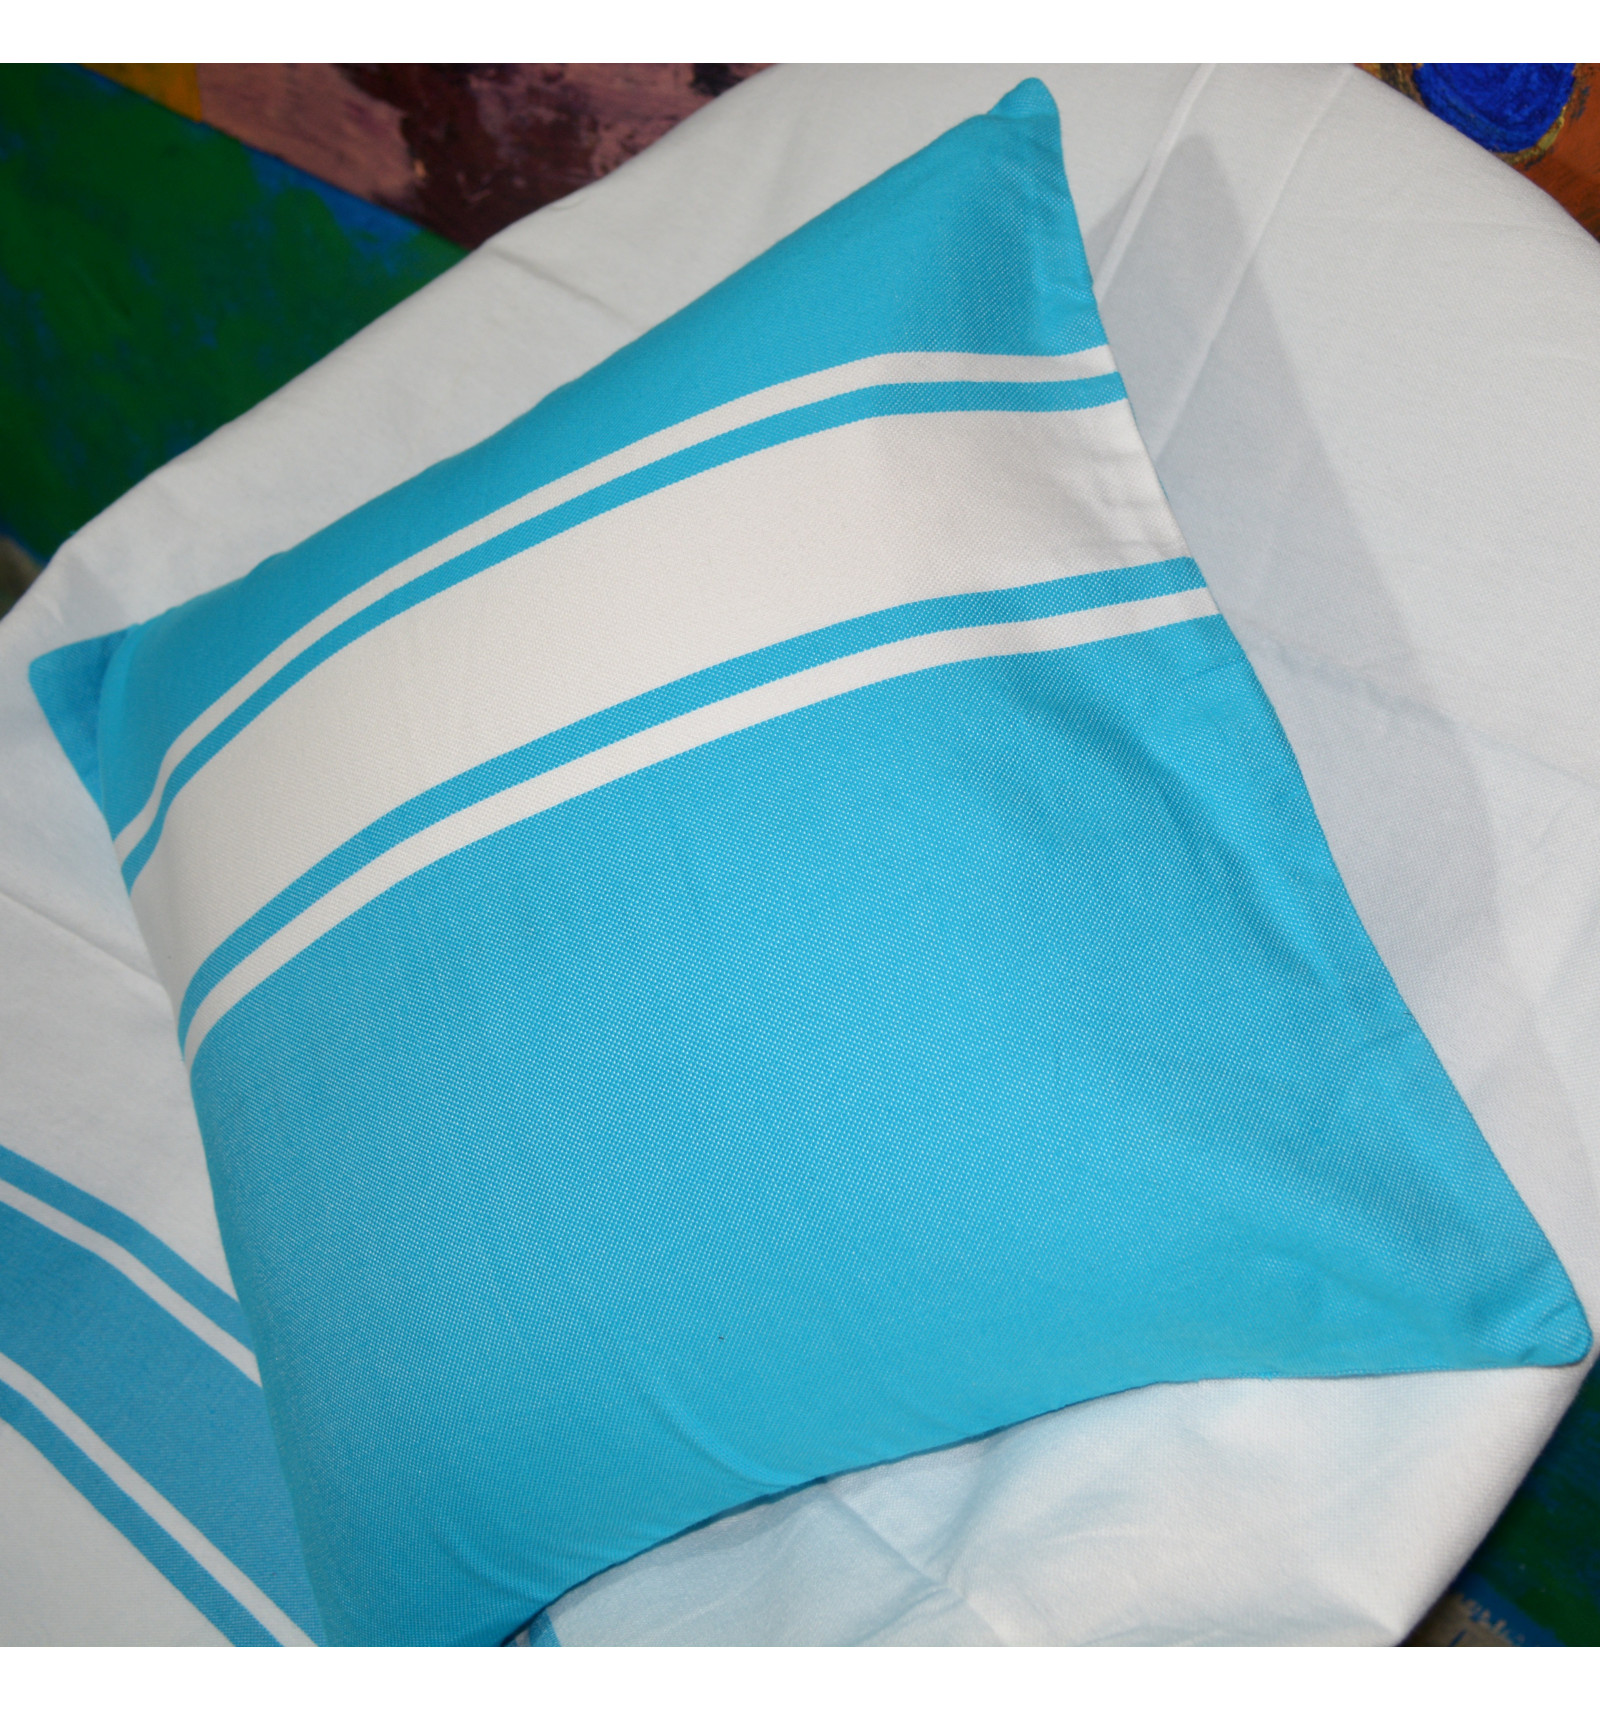 housse de coussin 40x40 fouta turquoise. Black Bedroom Furniture Sets. Home Design Ideas